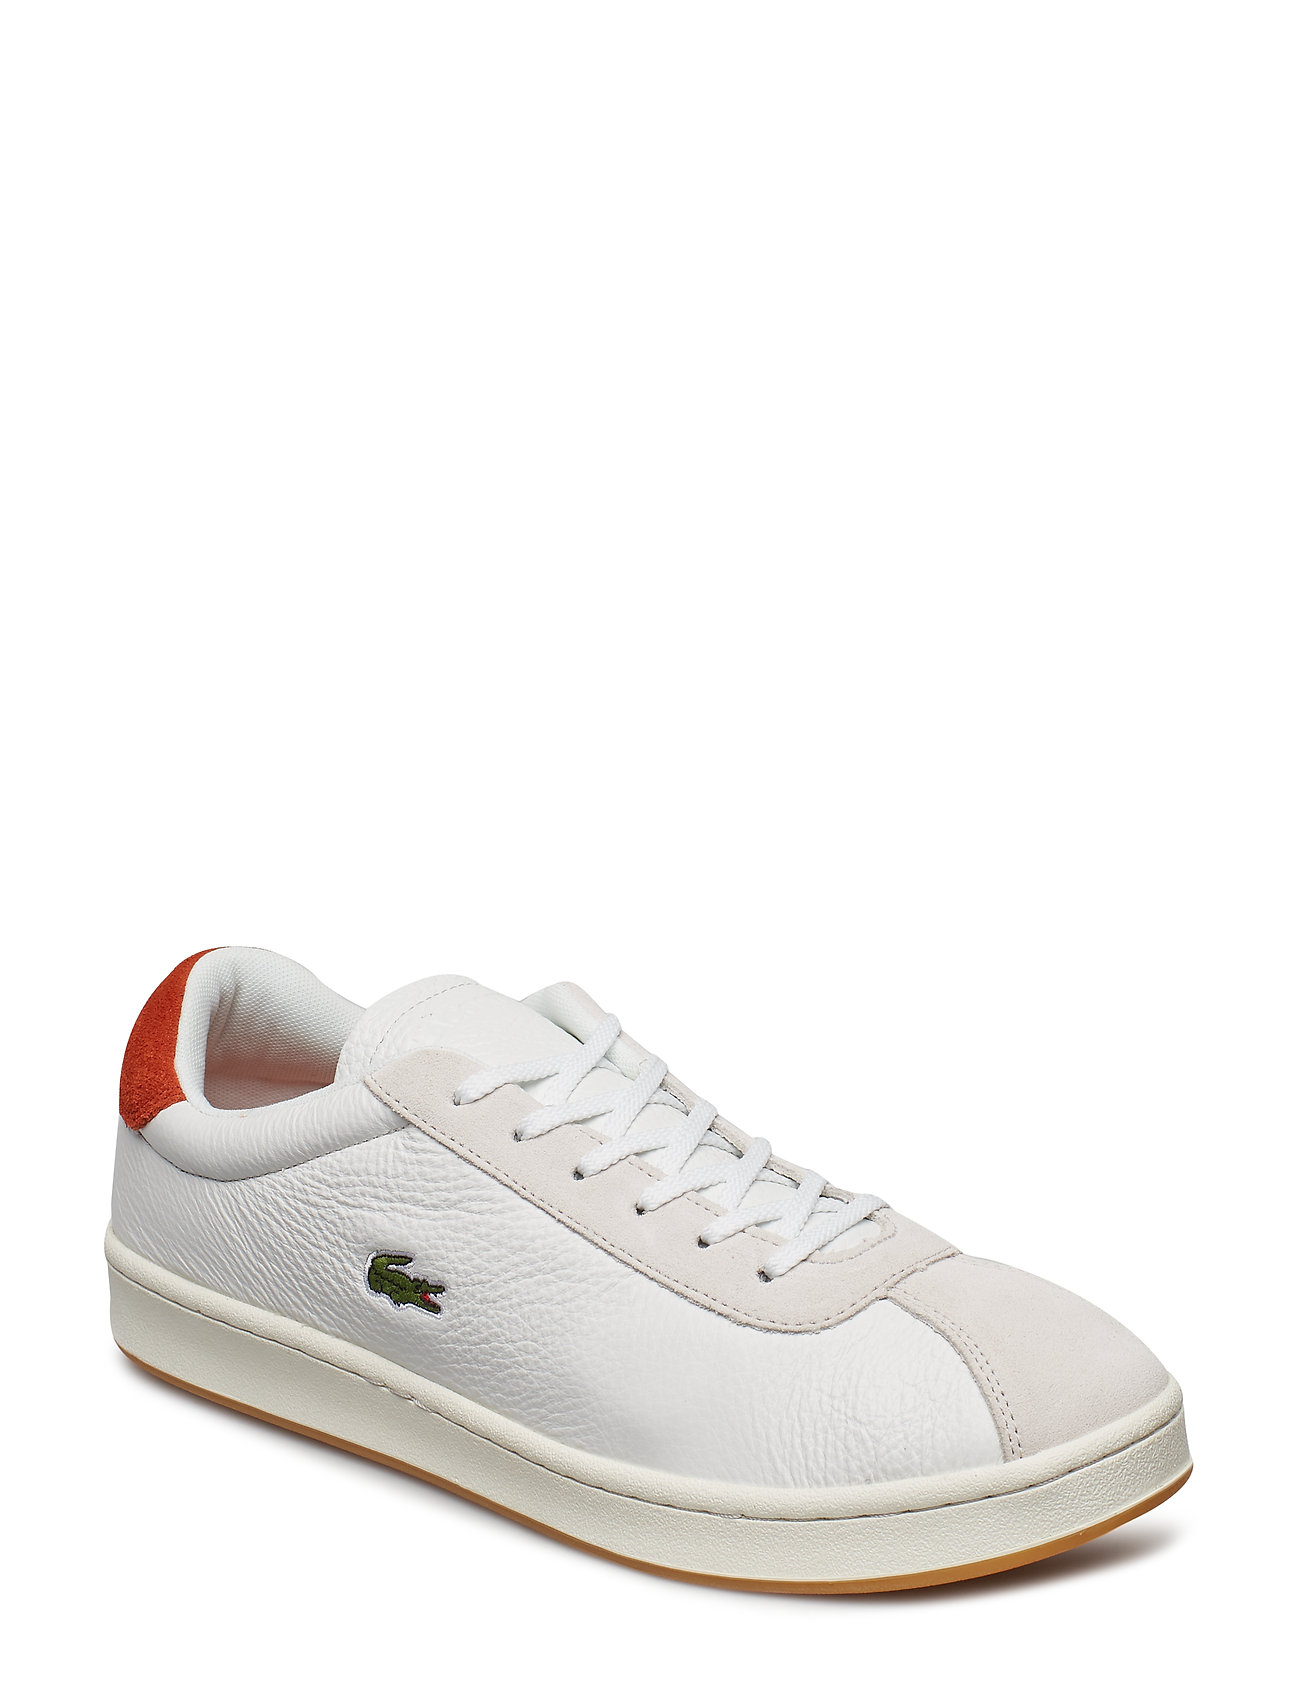 b6236dfce5c Masters 119 3 Sma Low-top Sneakers Rød LACOSTE SHOES sneakers fra ...